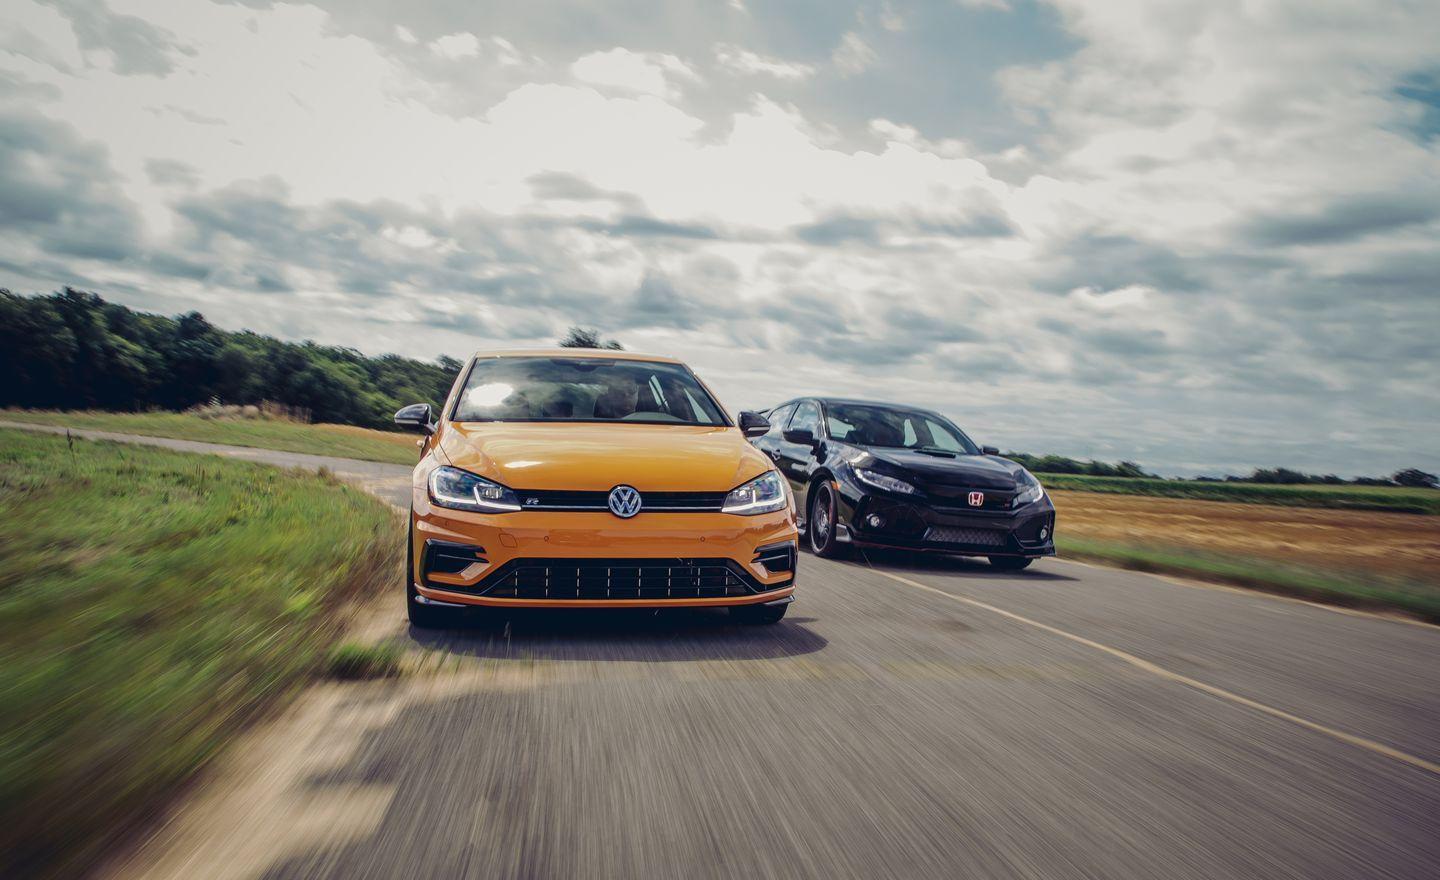 <p>To find out which has the sharpest teeth and is the easiest to live with, we aimed them both down the road and hit the test track—and discovered a host of surprising things about them along the way.</p>